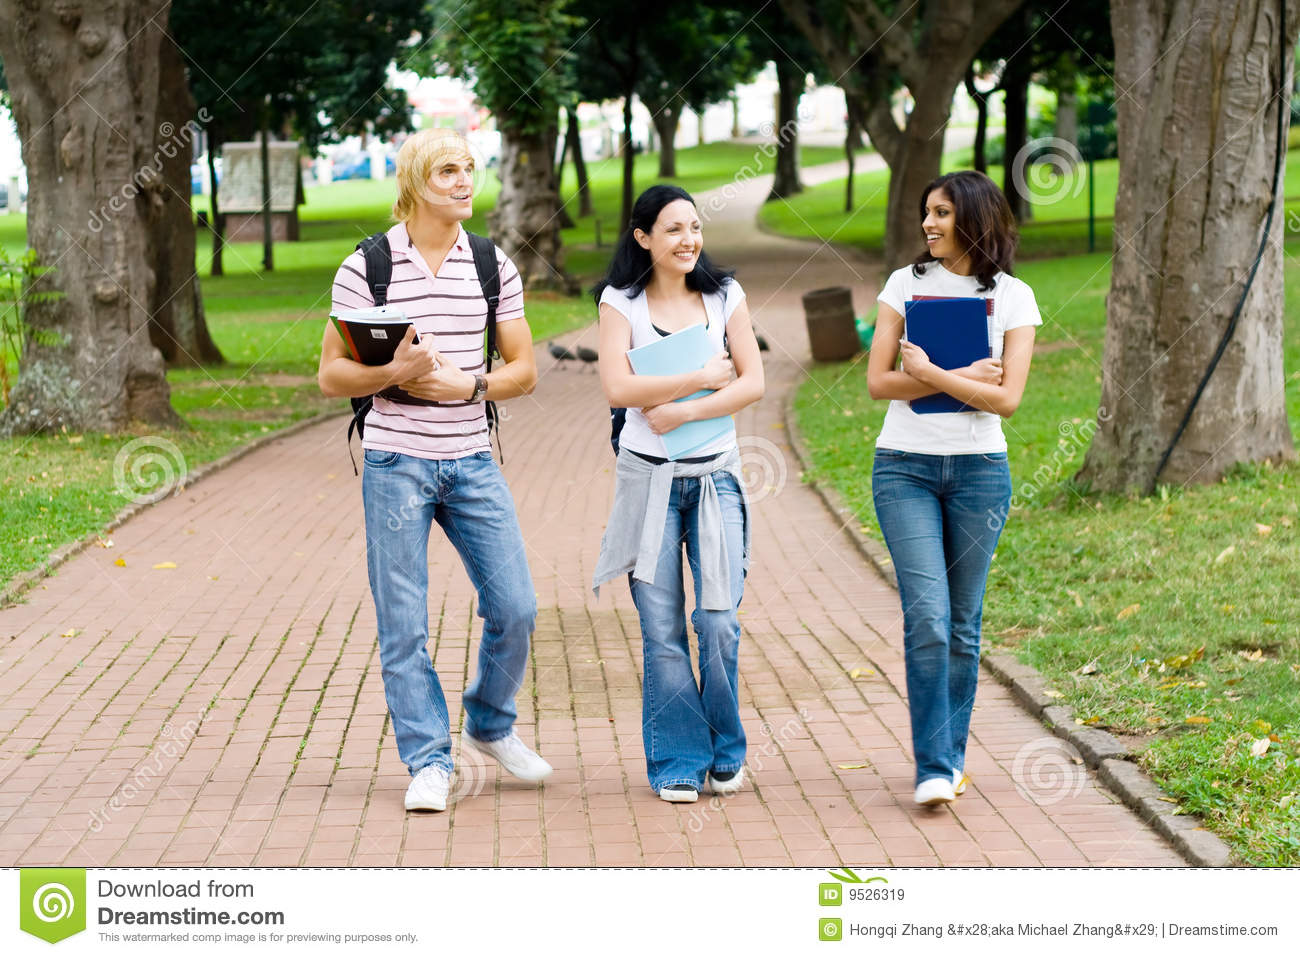 Students in campus